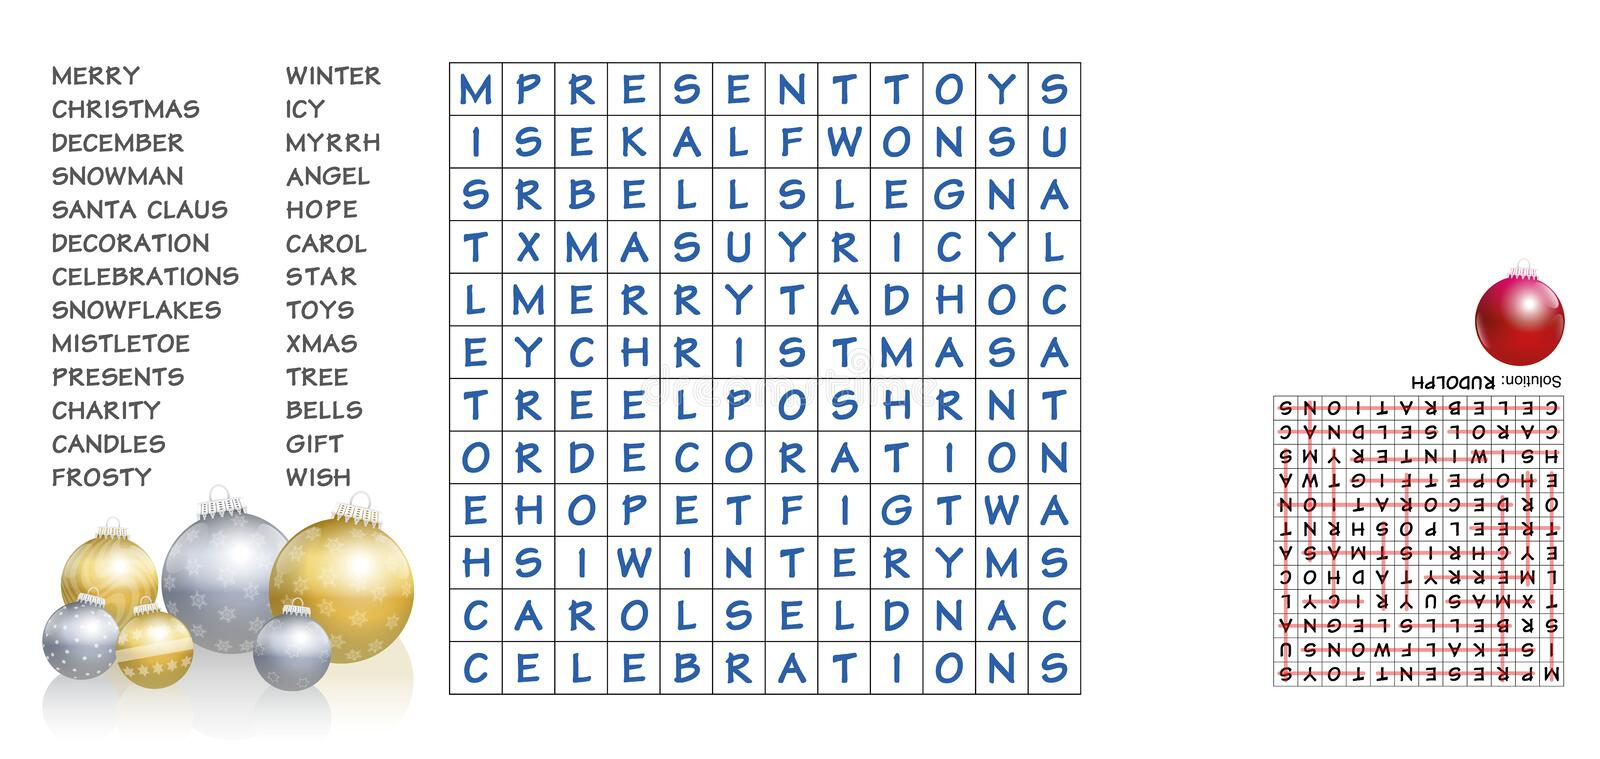 Christmas Words Search Puzzle. Christmas crossword - find the listed words in the puzzle and cross them out. The eight leftover letters will spell out an stock illustration